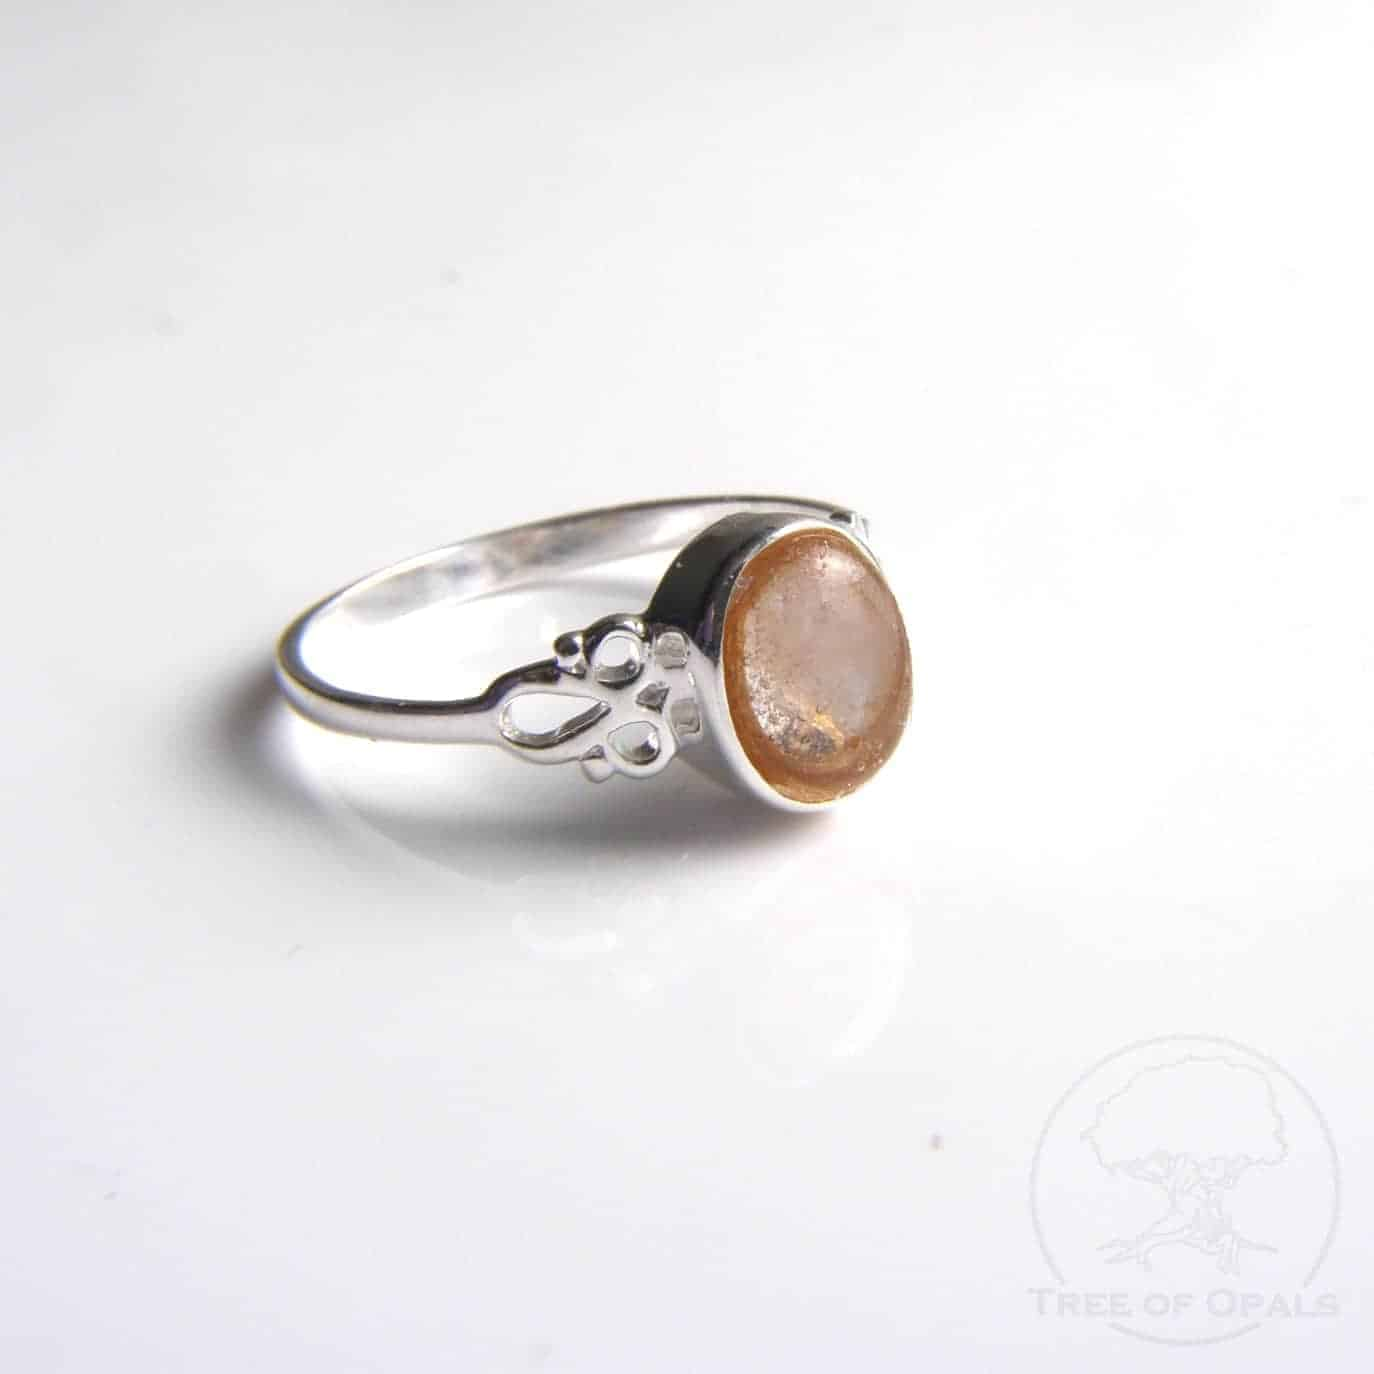 Rose quartz ring with a lock of hair we were privileged enough to make for Fleur-Rose's mama and auntie